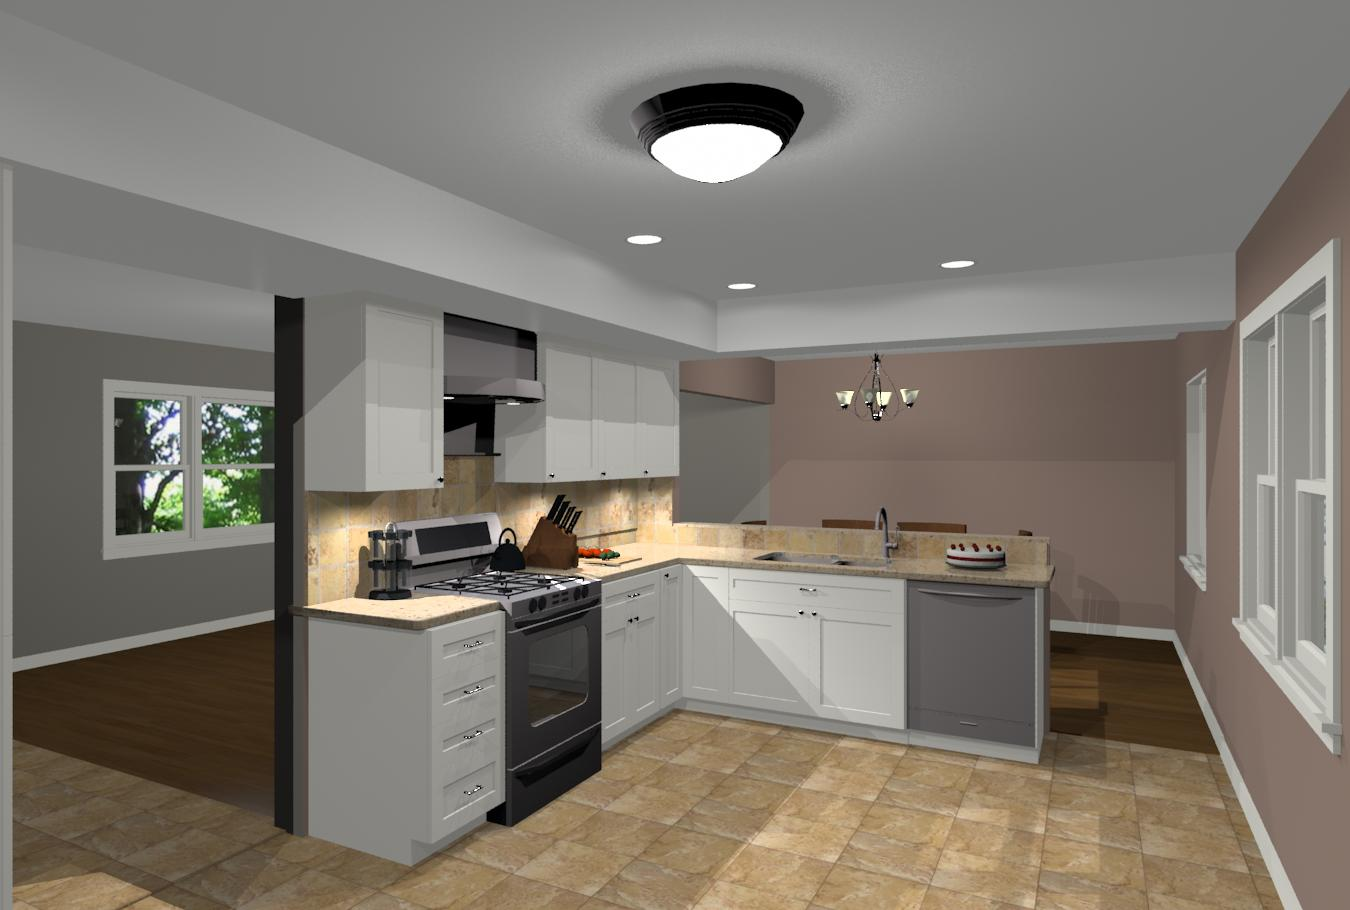 Basic kitchen design for makeover remodeling design for Basic kitchen remodel ideas